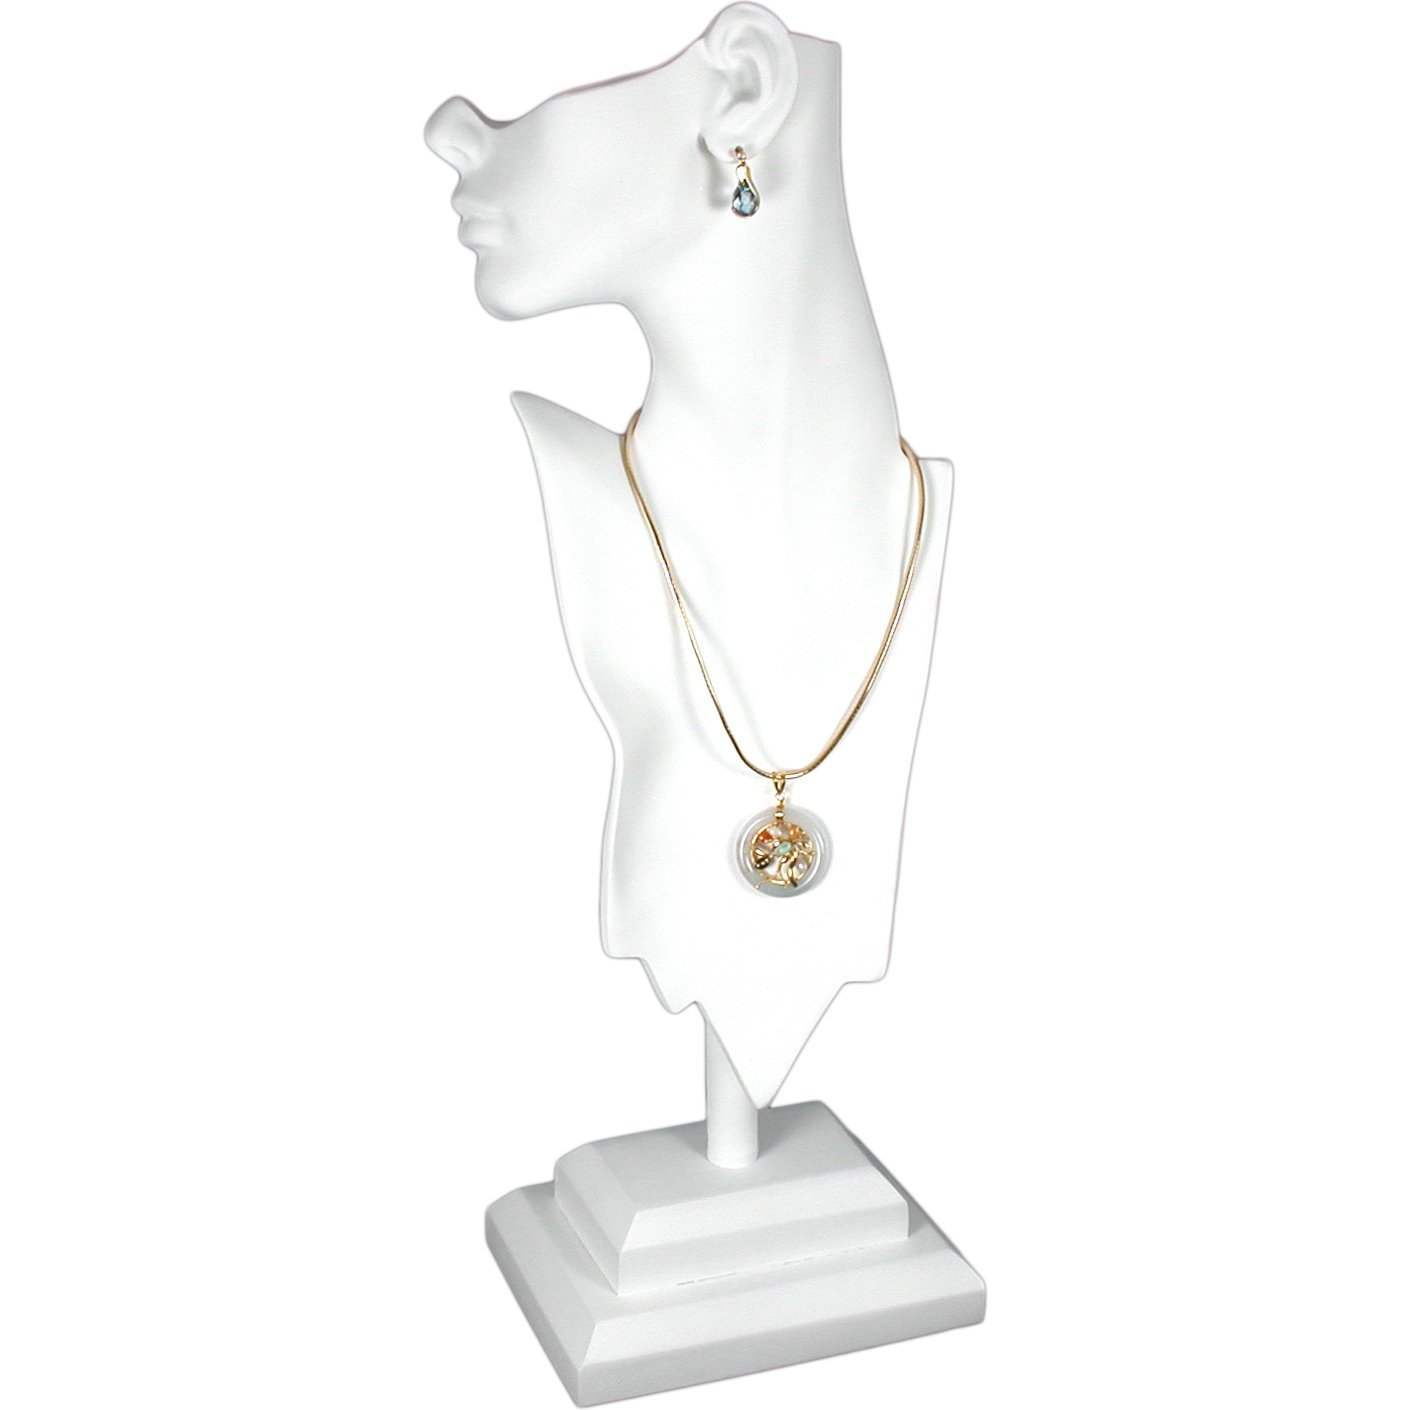 White Mannequin Necklace Bust Jewelry Display 20 New TH-PB18W